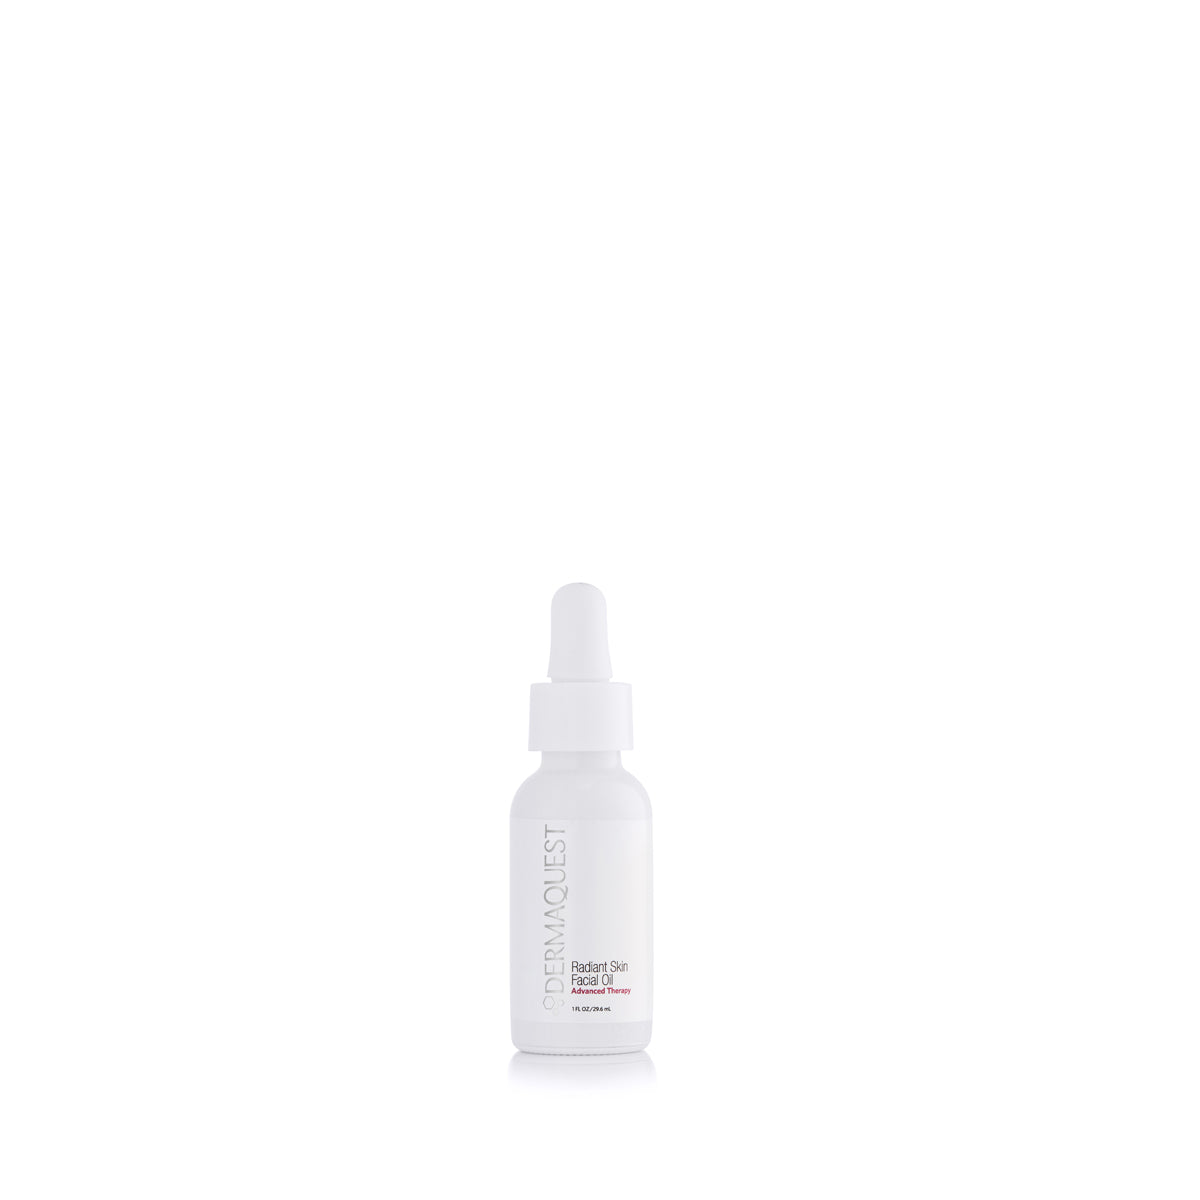 Dermaquest Advanced Radiant Skin Facial Oil